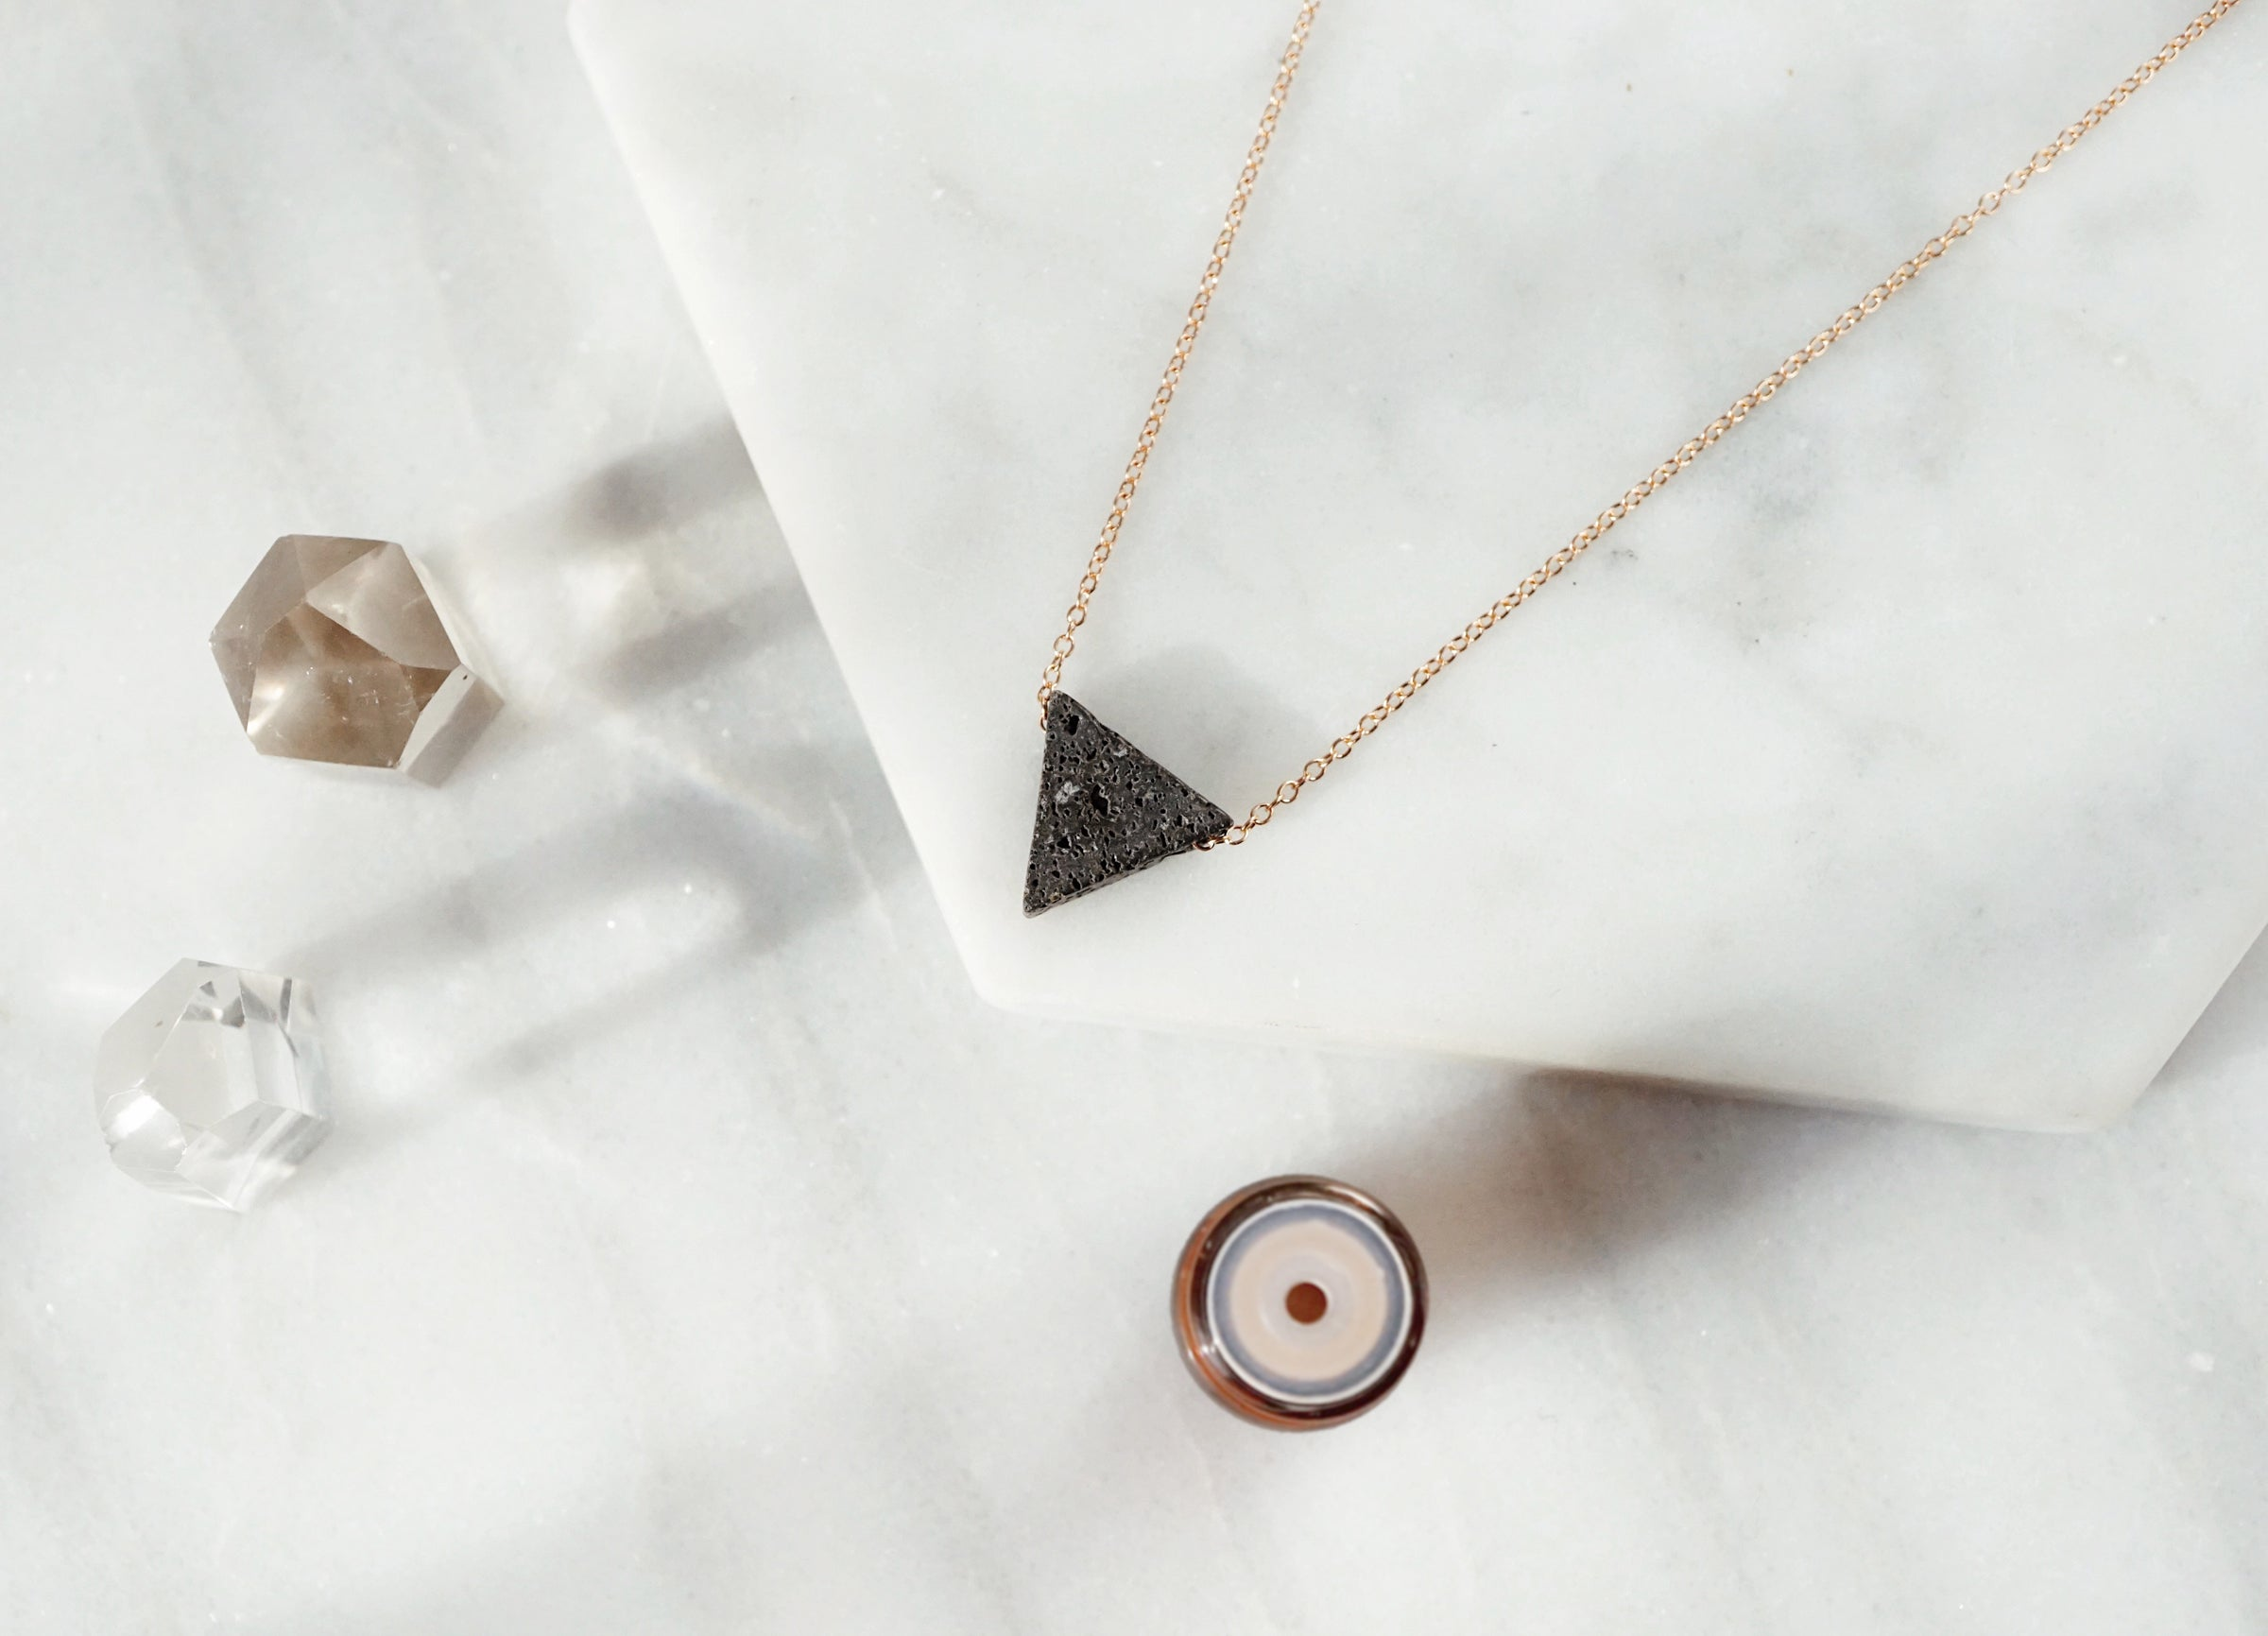 Minimal Black Triangle Necklace, Essential Oil Diffuser, Aromatherapy Necklace